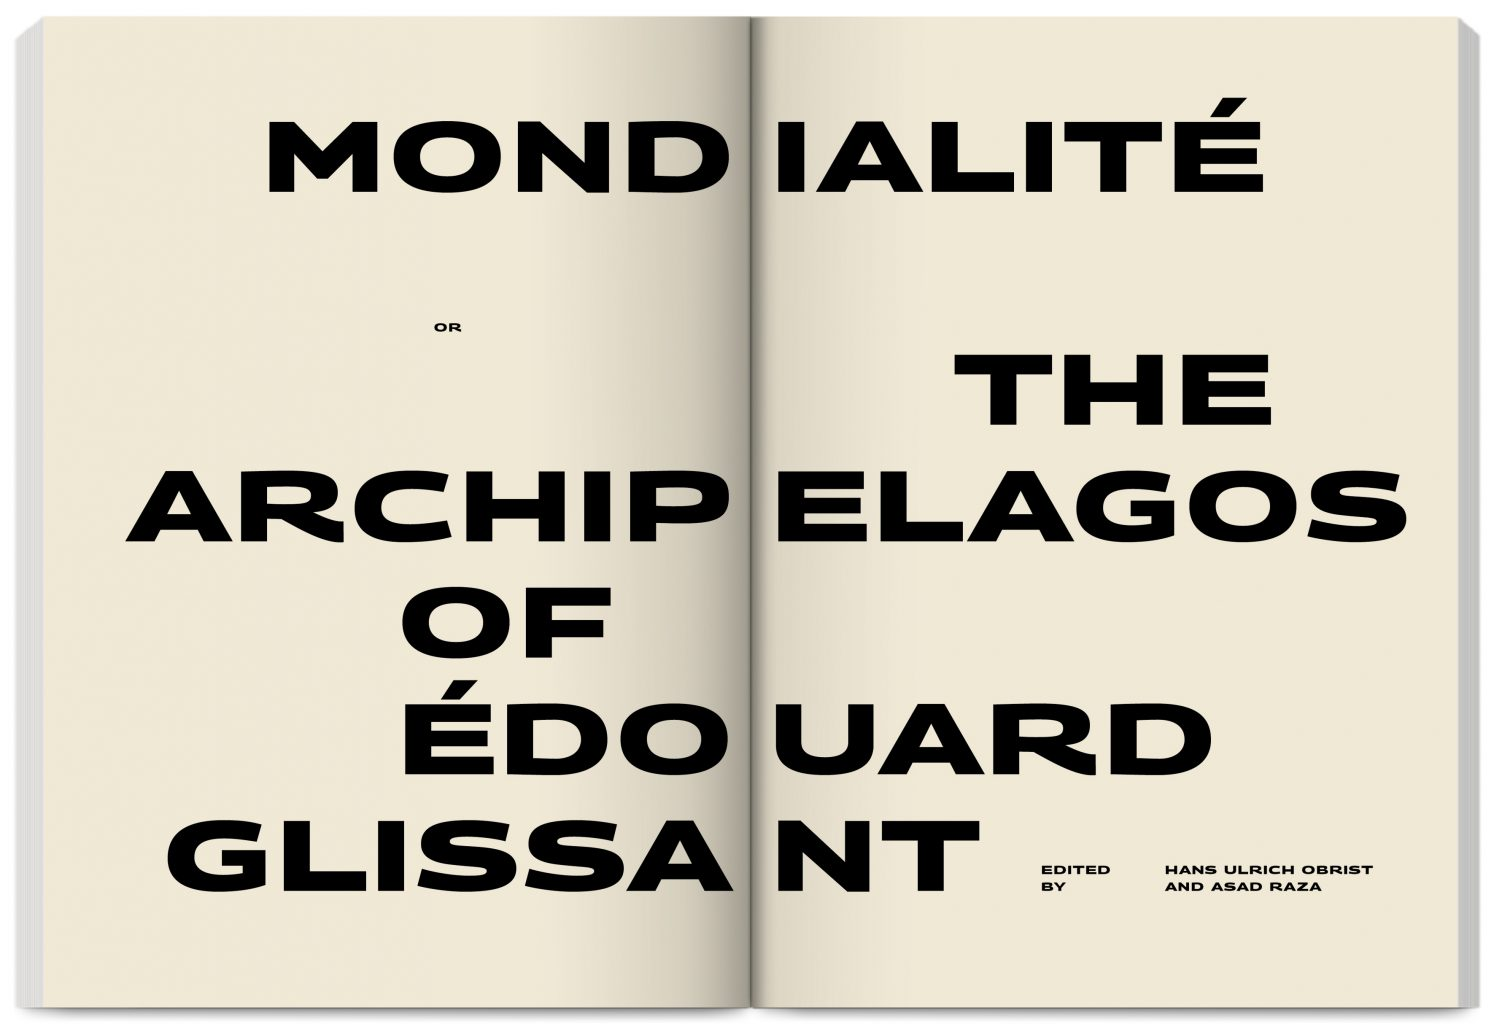 Publication Mondialité: or the archipelagos of Édouard Glissant edited by Hans Ulrich Obrist, Asad Raza, published by Villa Empain Fondation Boghossian, design by In the shade of a tree studio, founded by Sophie Demay and Maël Fournier Comte.